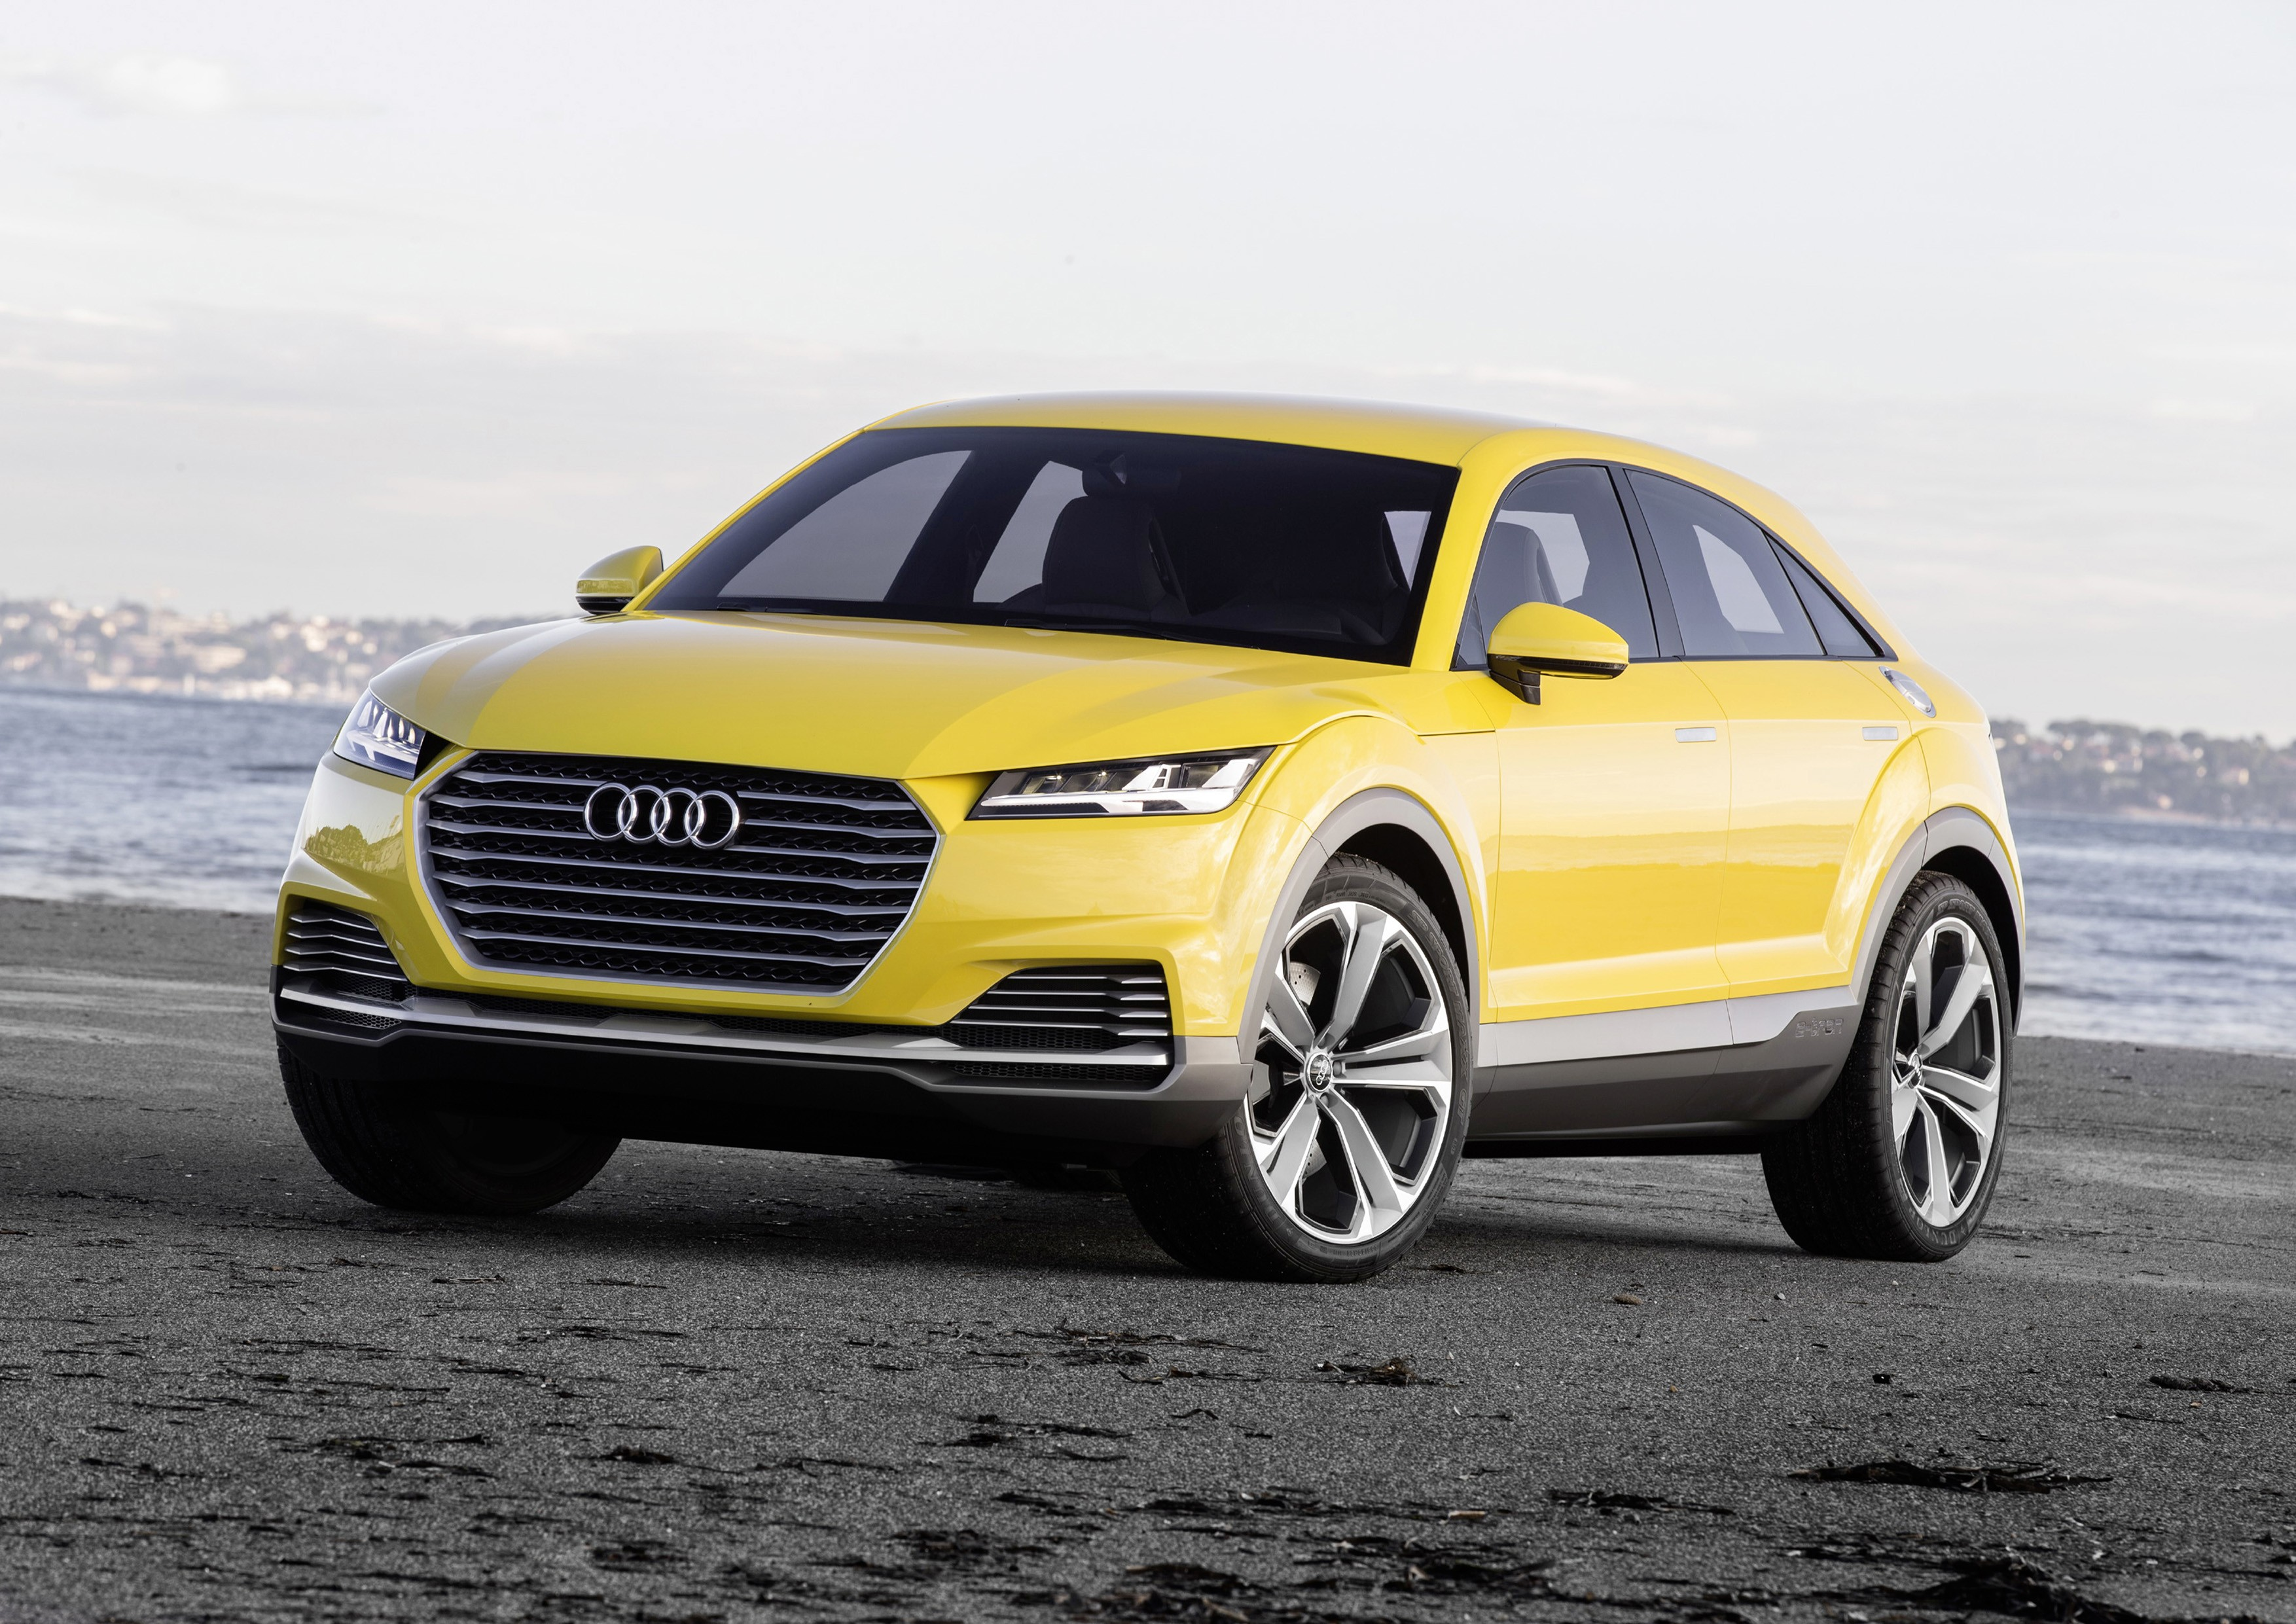 audi to launch ttq offroader in 2017 due to fight with fiat over q4 name autoevolution. Black Bedroom Furniture Sets. Home Design Ideas